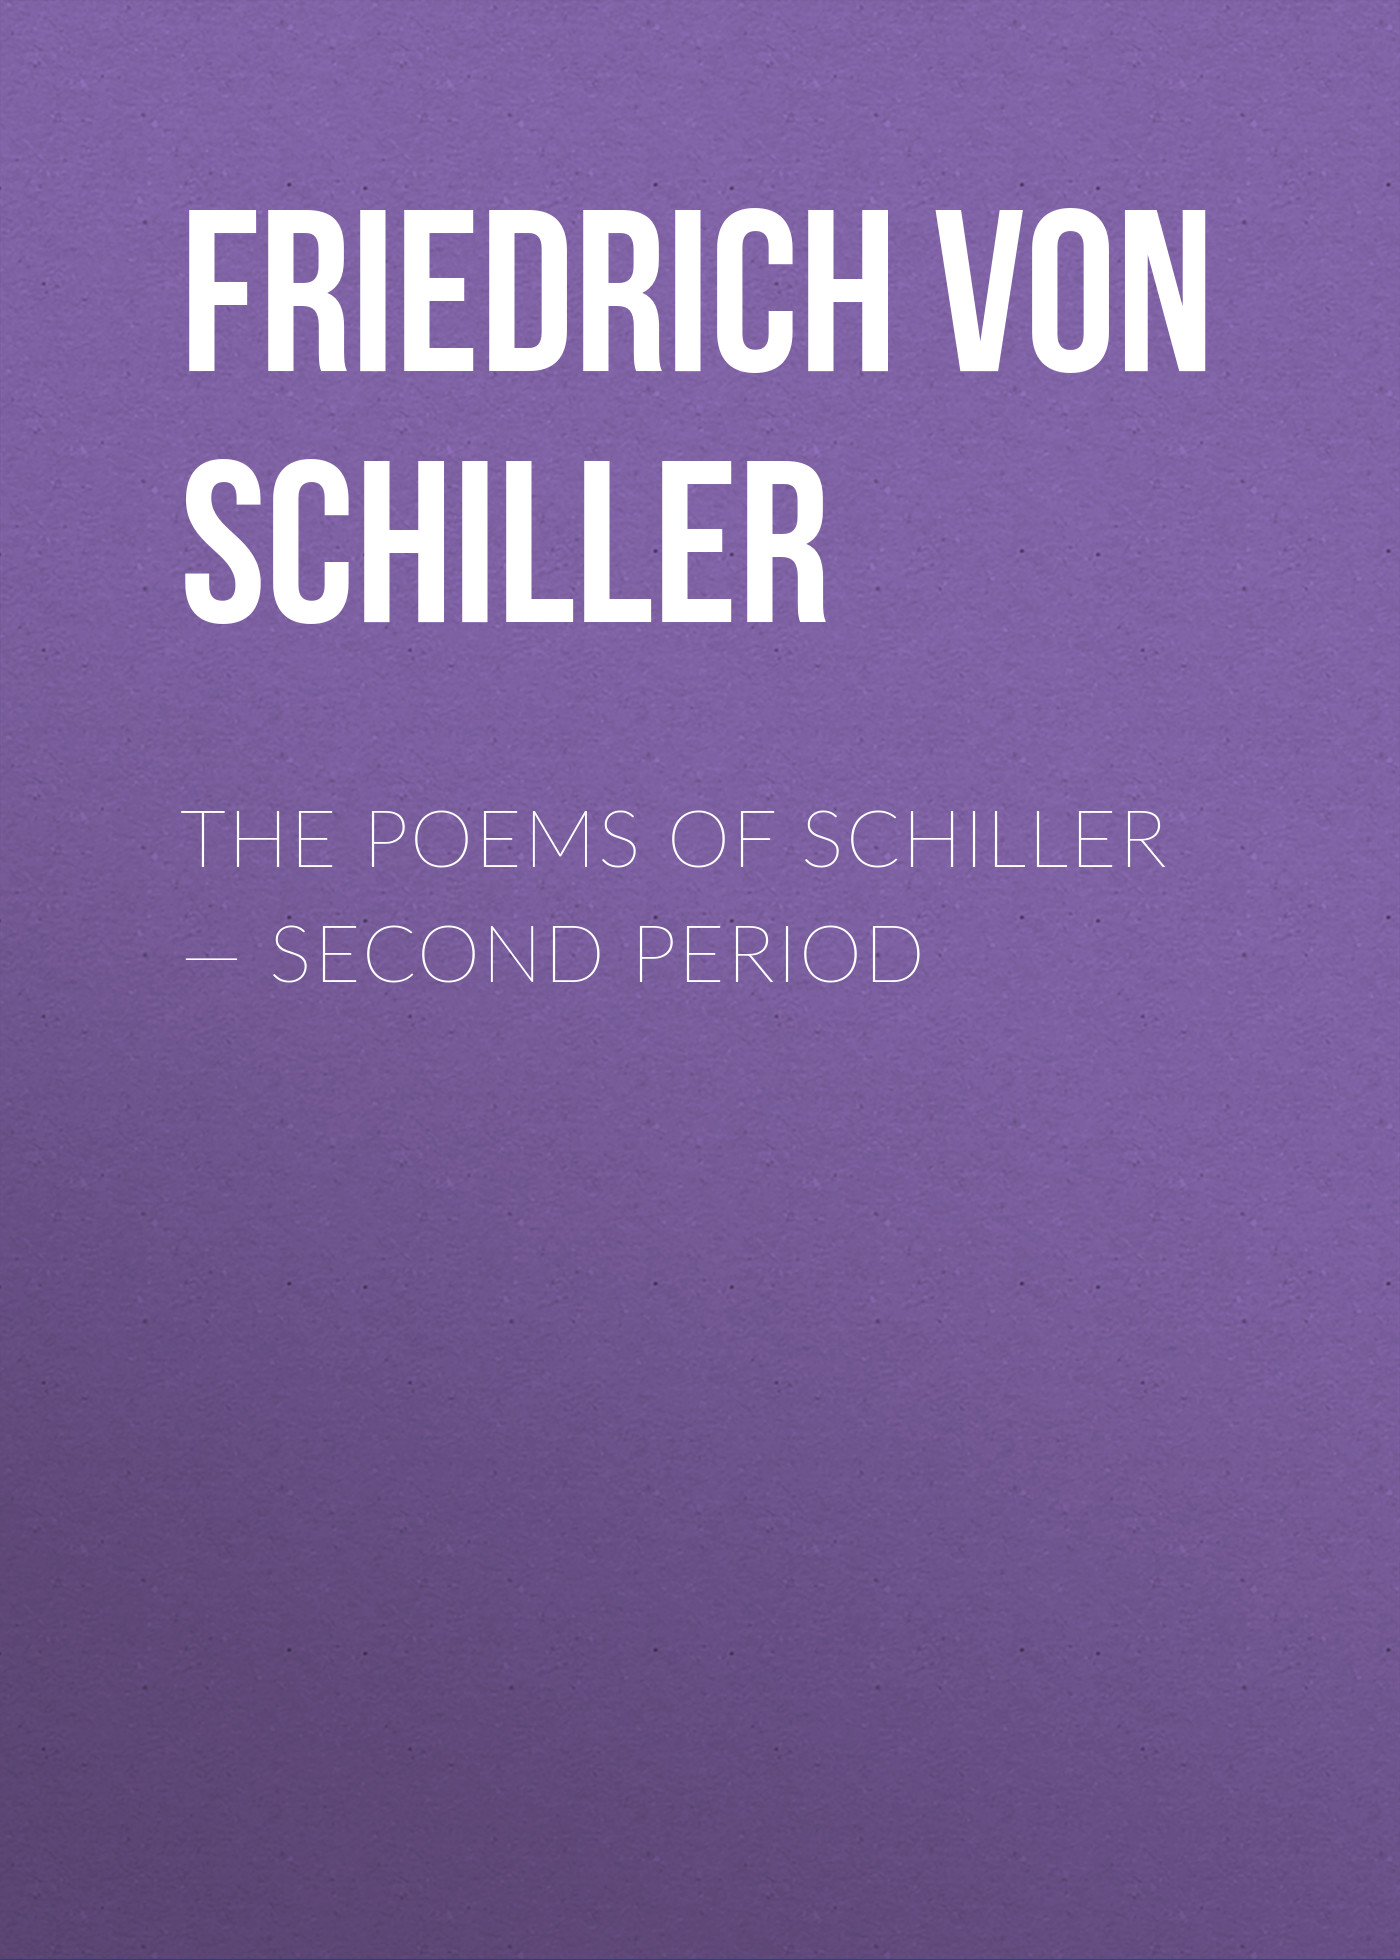 Friedrich von Schiller The Poems of Schiller – Second period schiller schiller sun